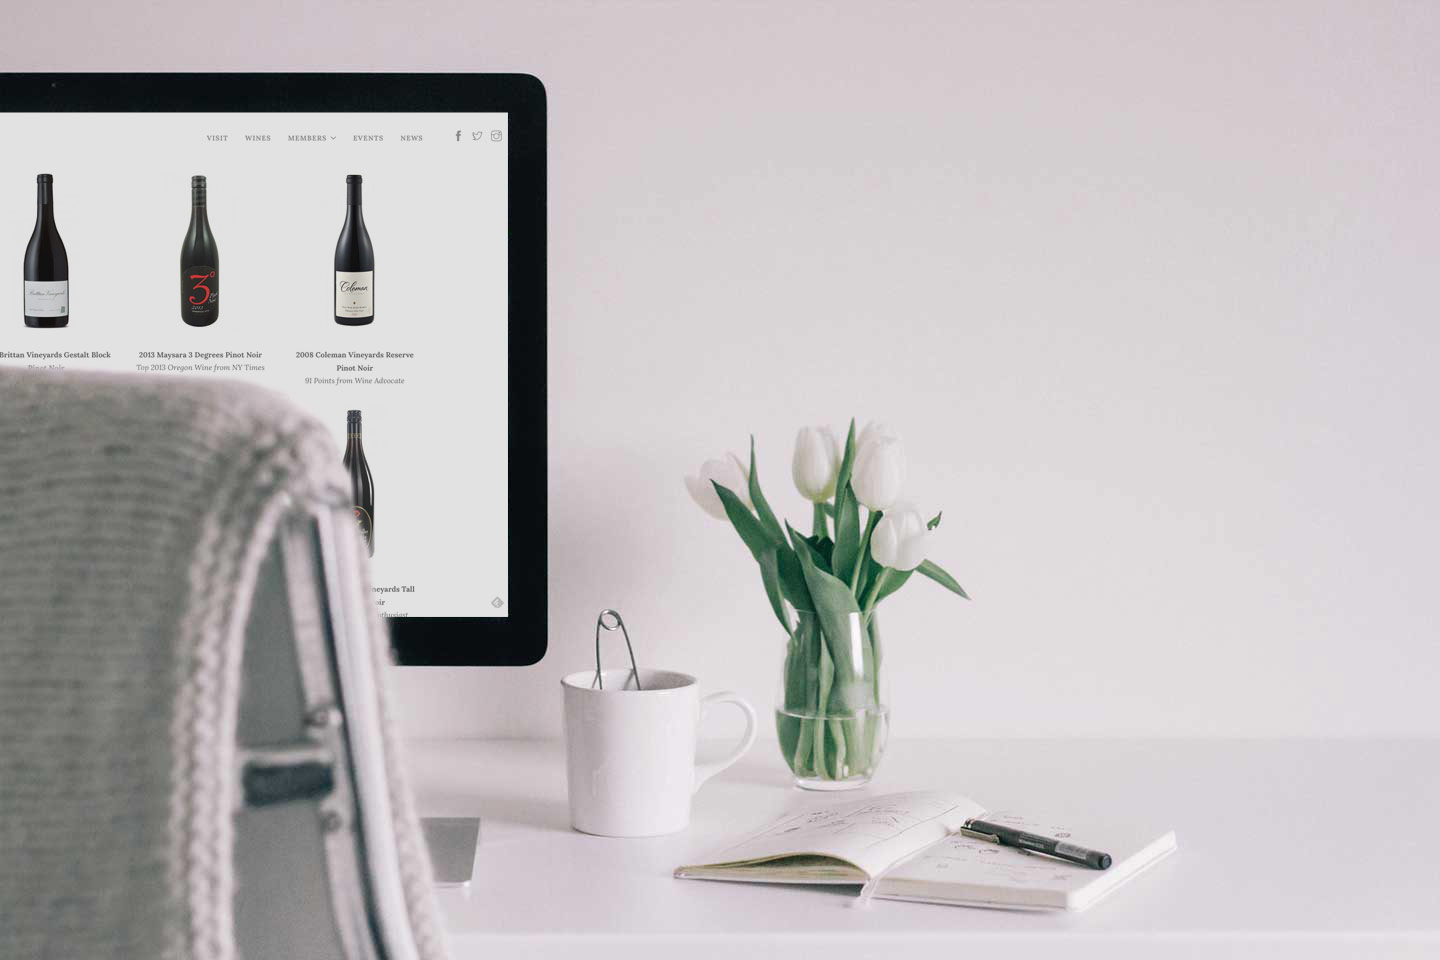 New wine trade group website